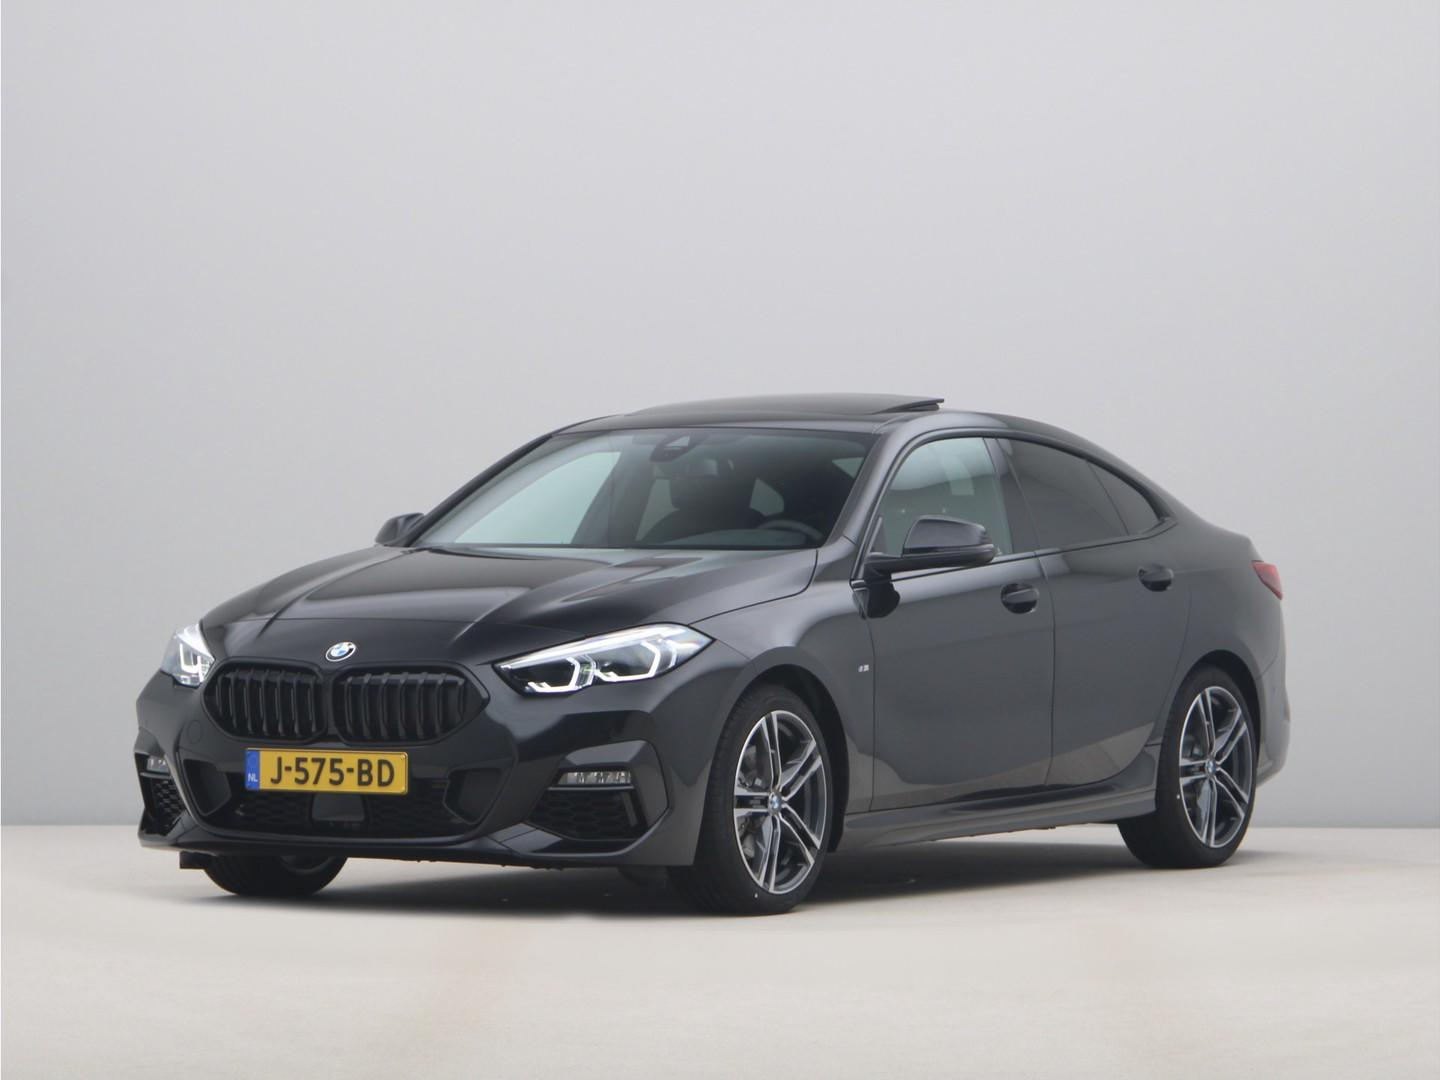 Bmw 2 serie Gran coupé 218i high executive